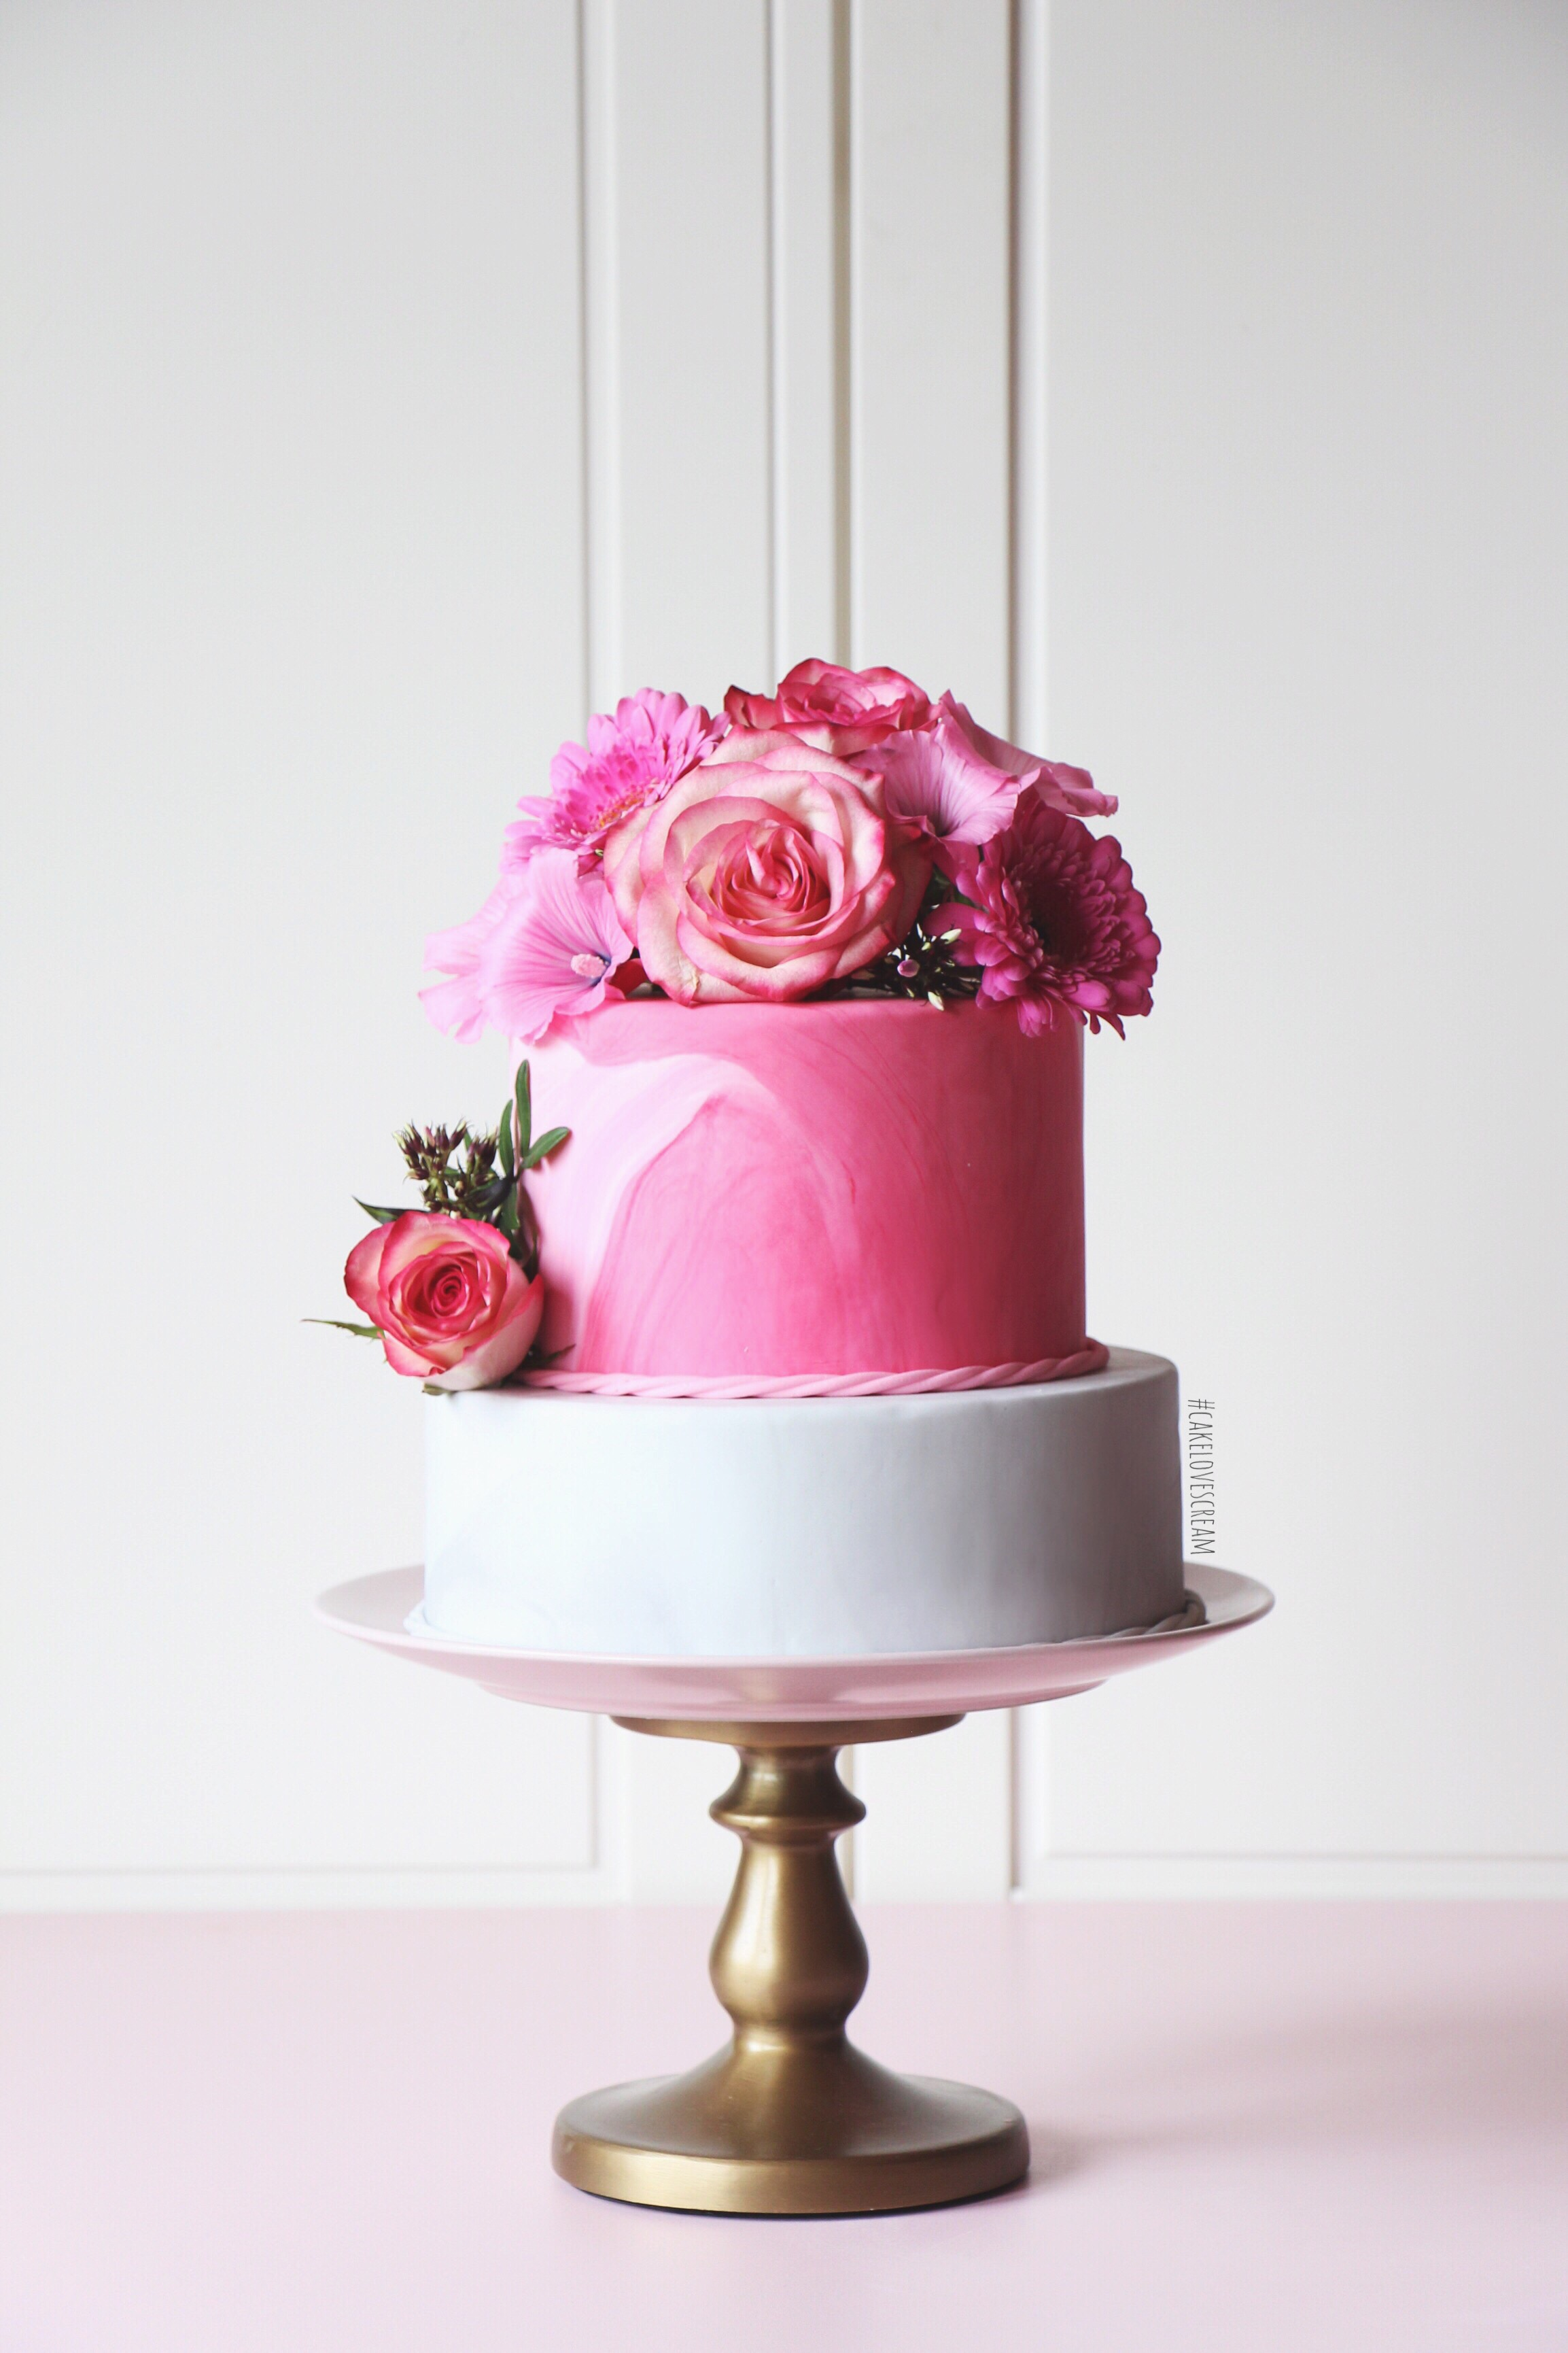 Pink marbled wedding cake with gray and sugar roses